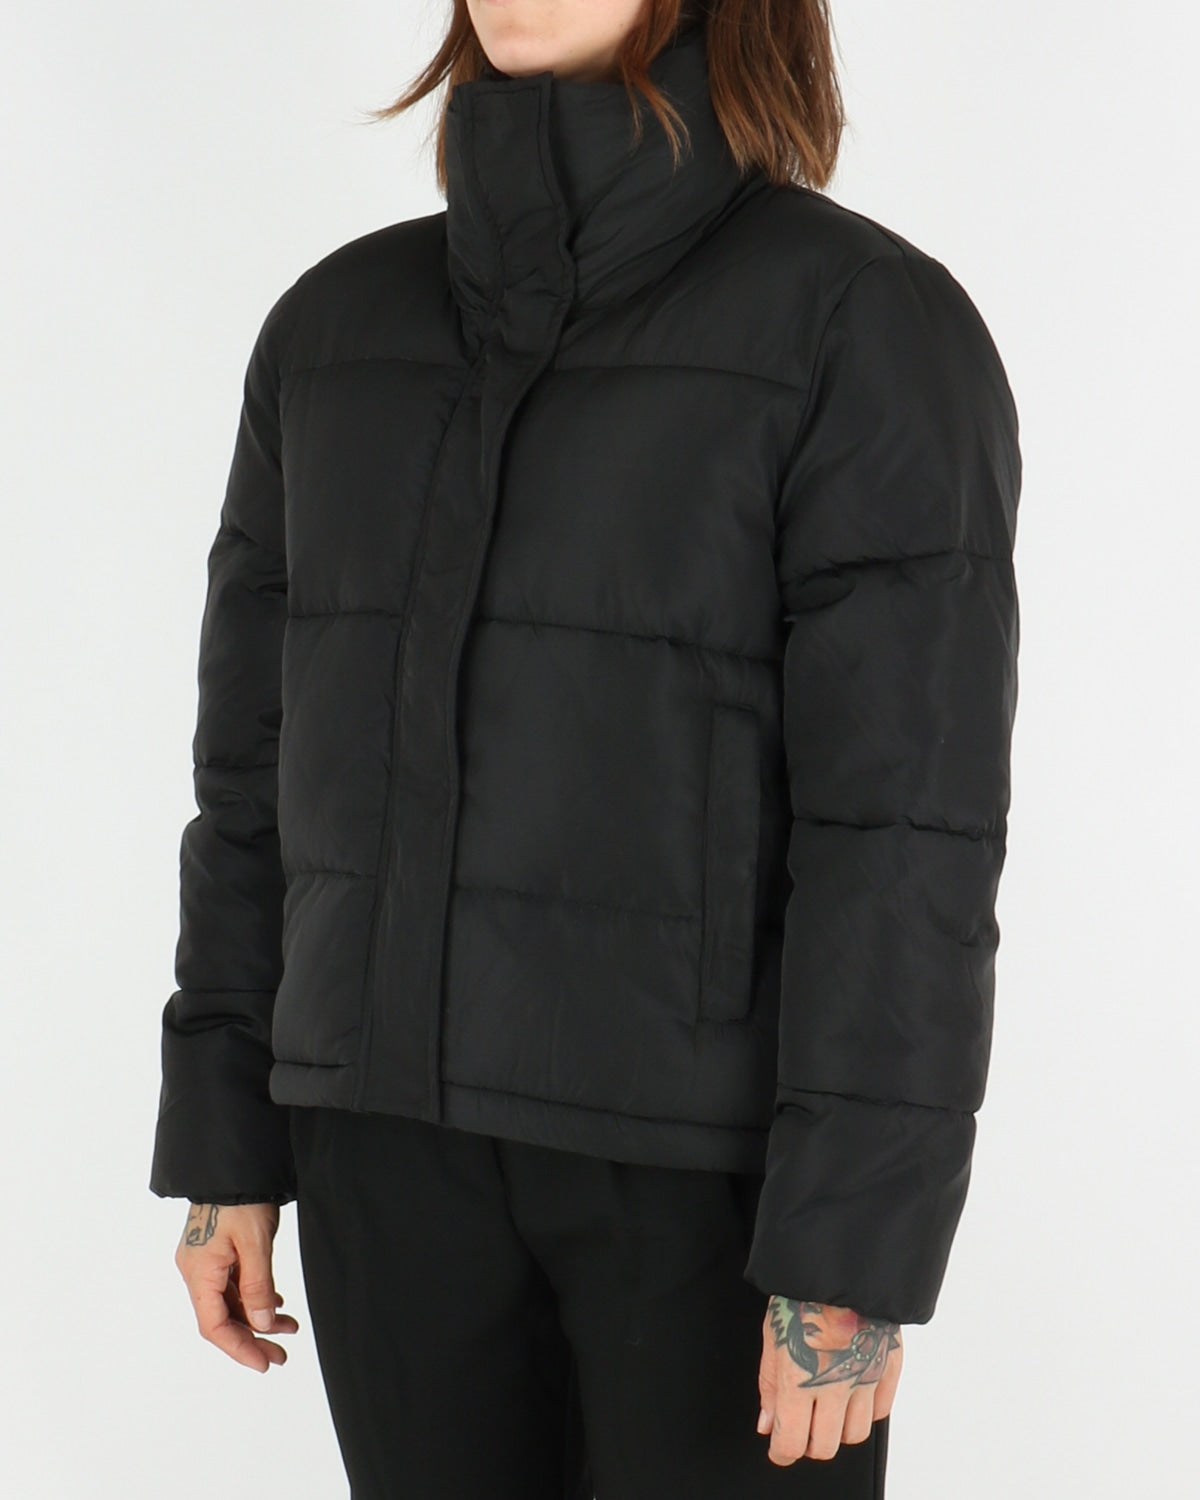 selfhood_puffer jacket 77126_black_3_5